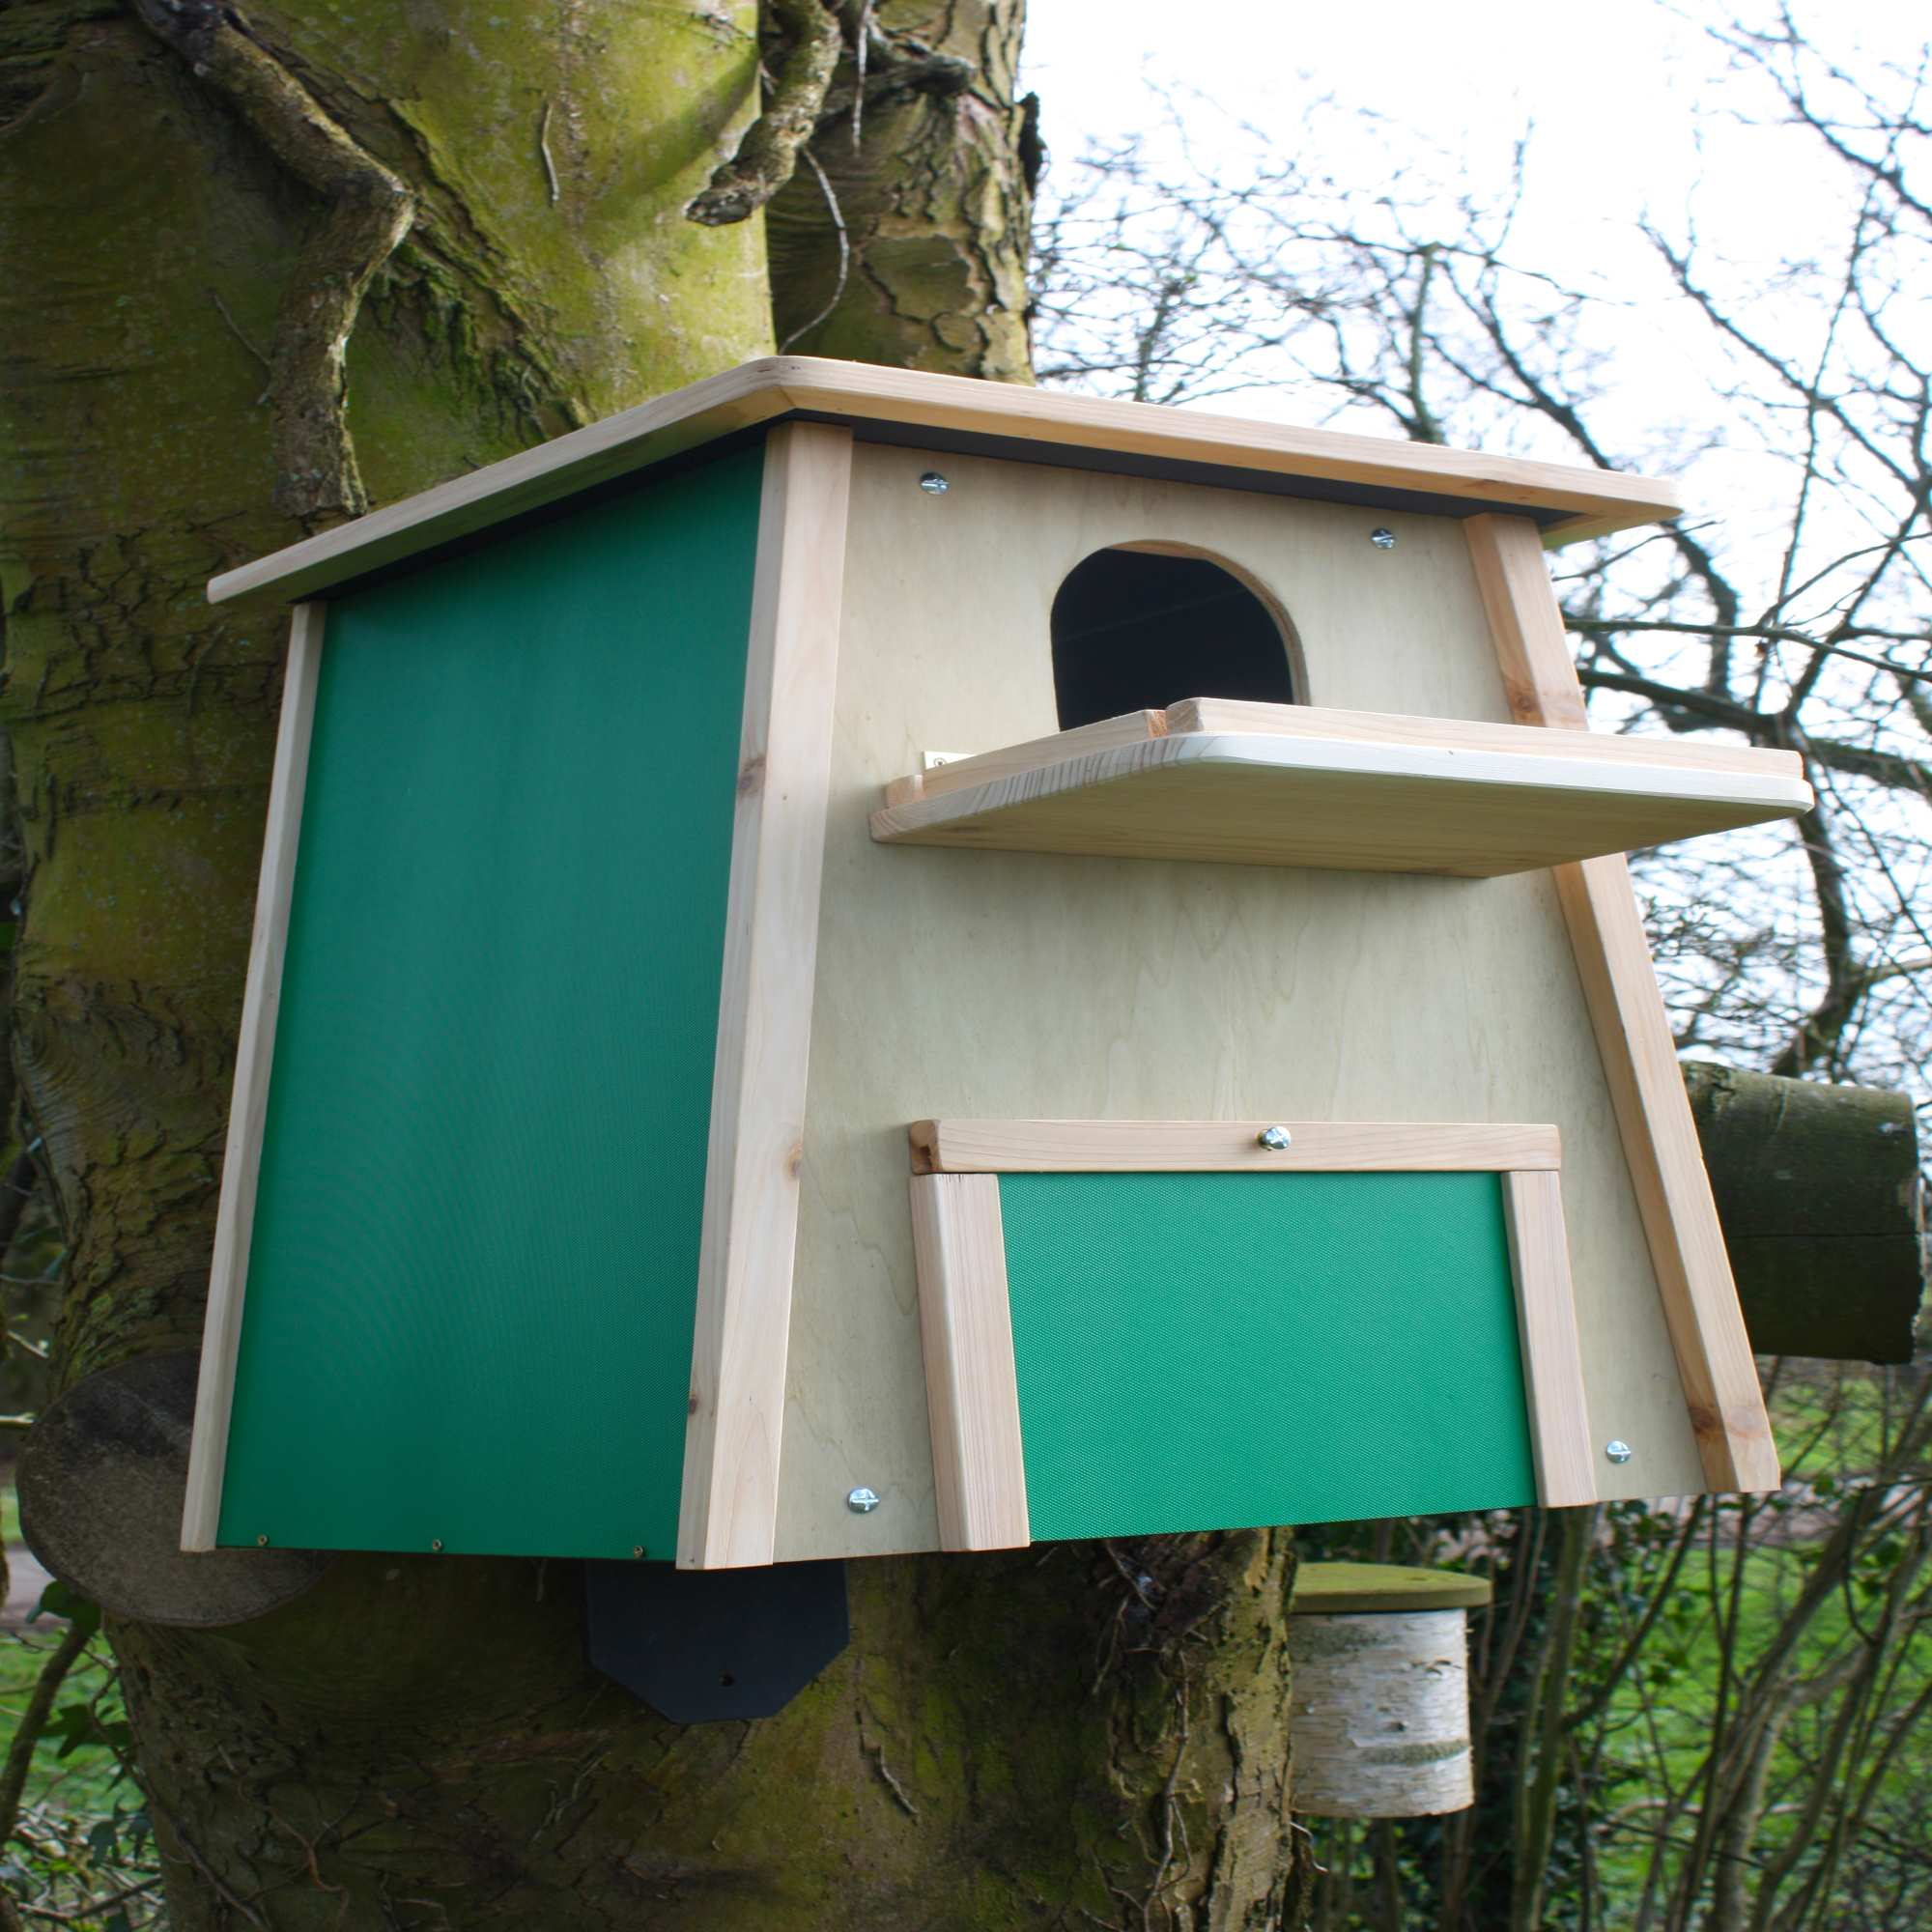 Barn Owl Nest Box Wildlife Nest Boxes Green Tech